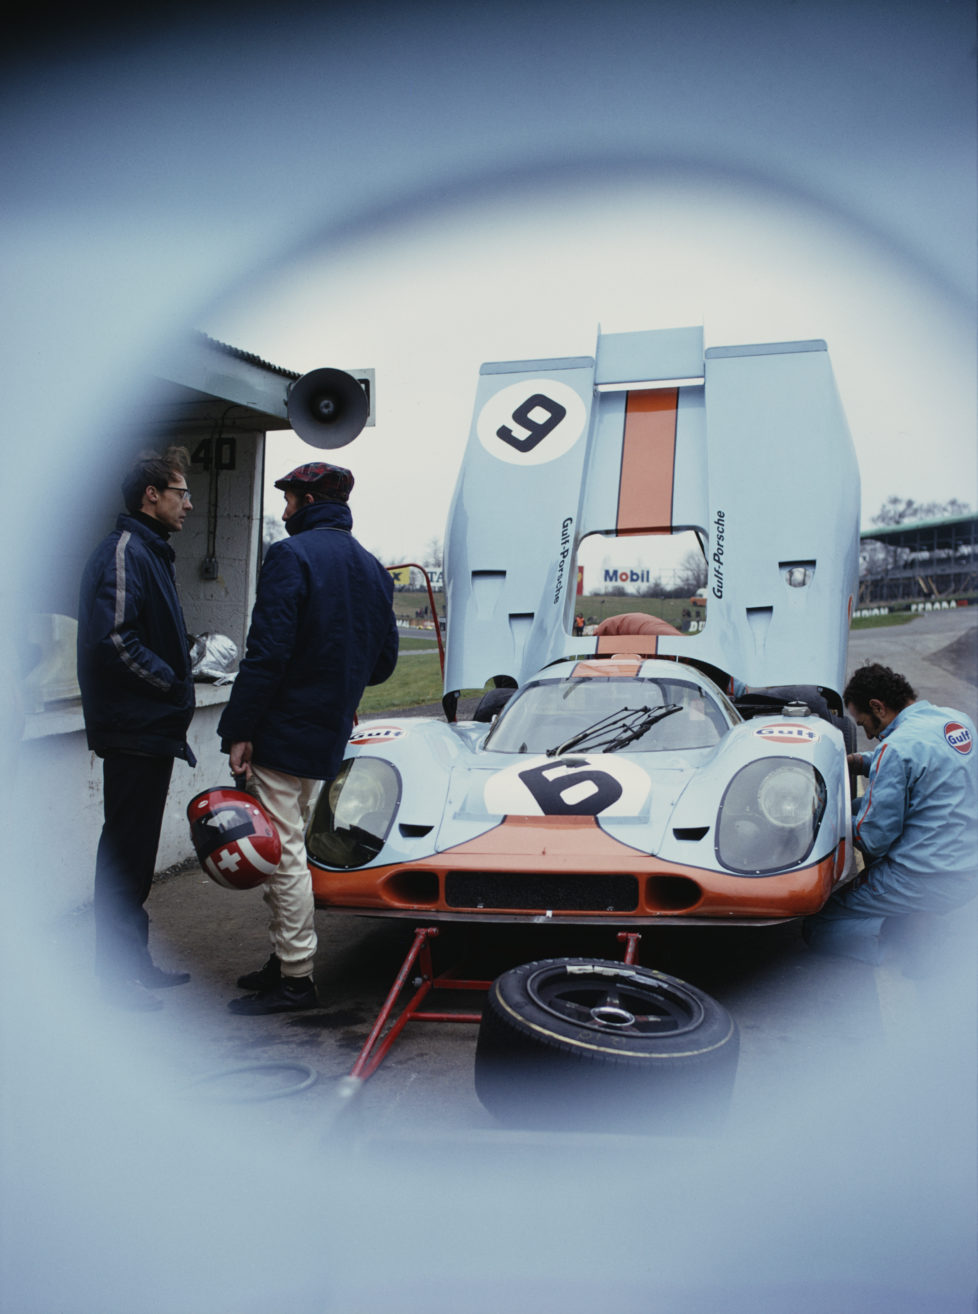 Jo Siffert of Switzerland stands beside the #6 JW Automotive Engineering Gulf Porsche 917K during practice for the International Championship for Makes BOAC 1000 Kilometres of Brands Hatch race on 3rd April 1971 at the Brands Hatch Circuit, Fawkham, Great Britain. (Photo by Rainer W. Schlegelmilch/Getty Images) *** Local Caption *** Jo Siffert